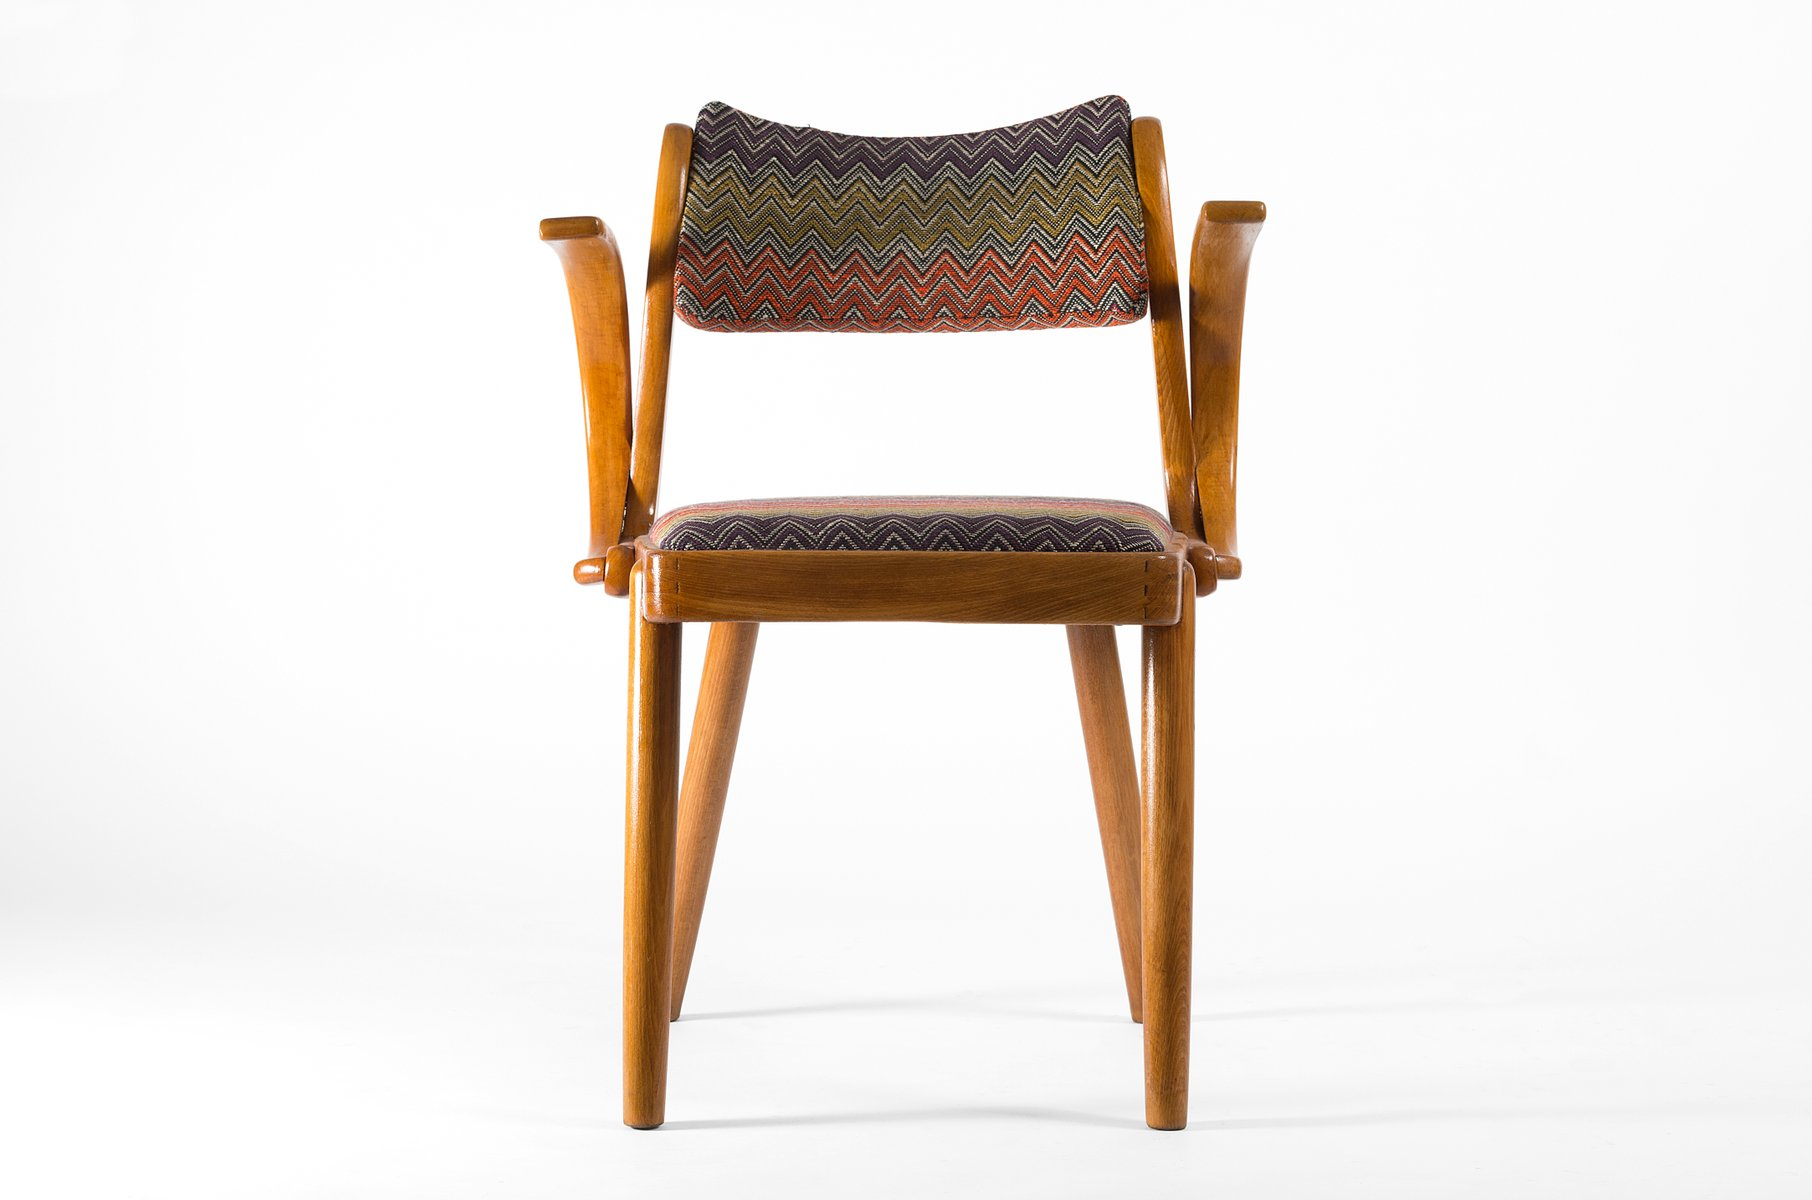 Zigzag Patterned Art Deco Armchair 1930s For Sale At Pamono